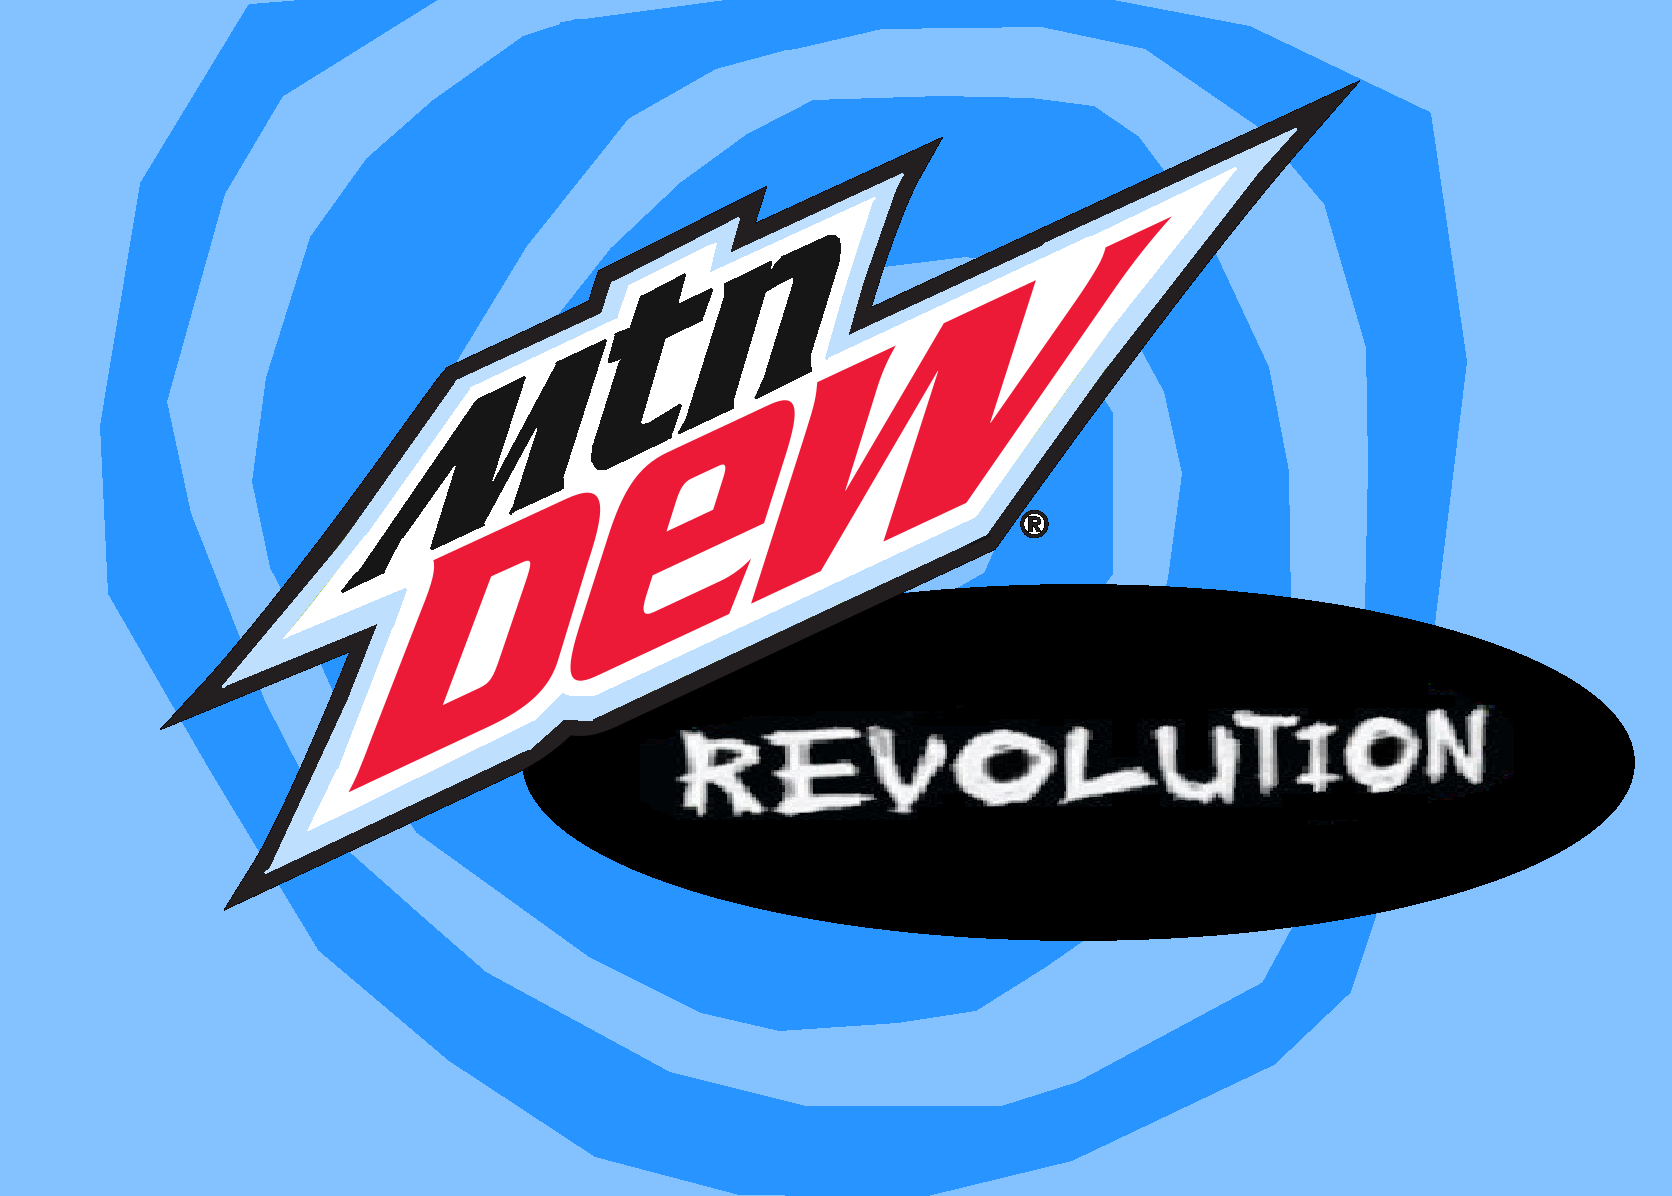 Mountain Dew Revolution logo in a blue swirl background.png